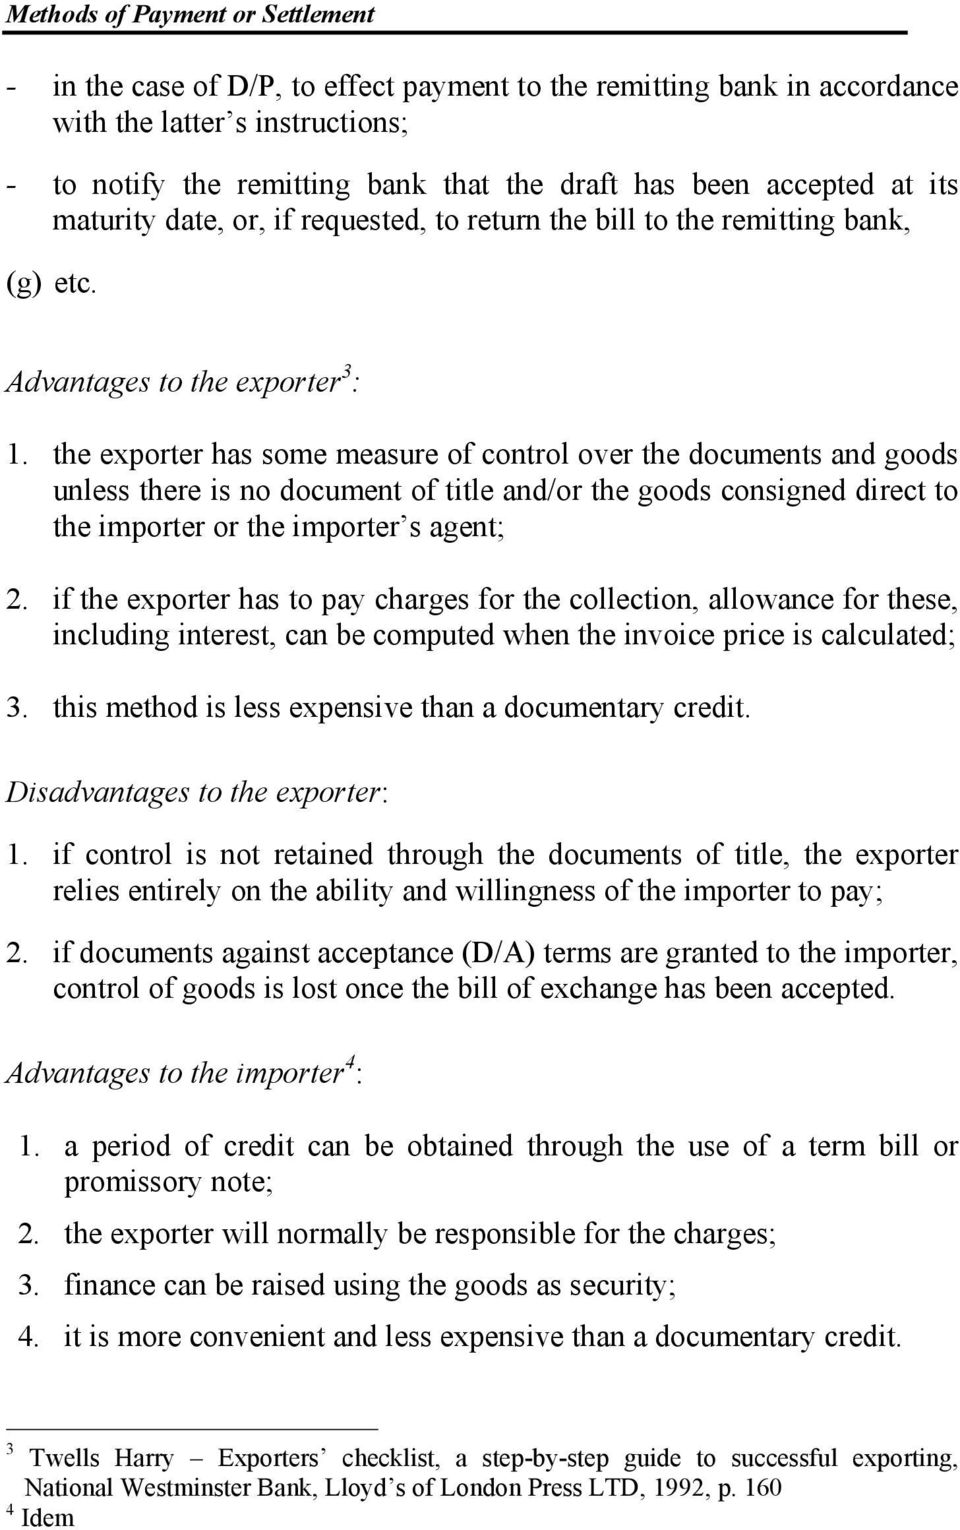 the exporter has some measure of control over the documents and goods unless there is no document of title and/or the goods consigned direct to the importer or the importer s agent; 2.